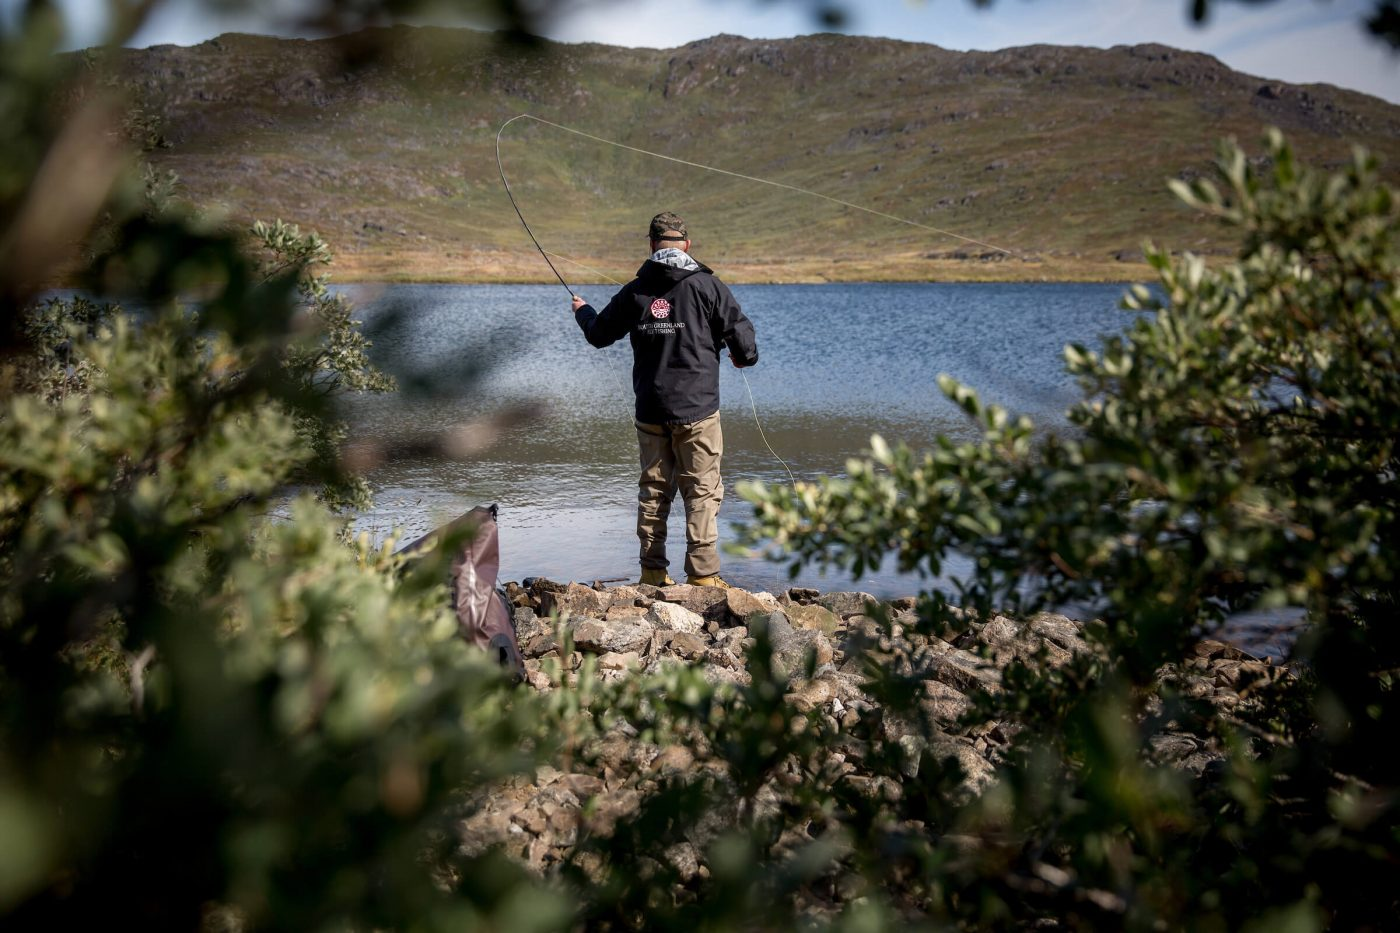 Fly fishing for arctic charr with the guide from South Greenland Fly Fishing. By Mads Pihl